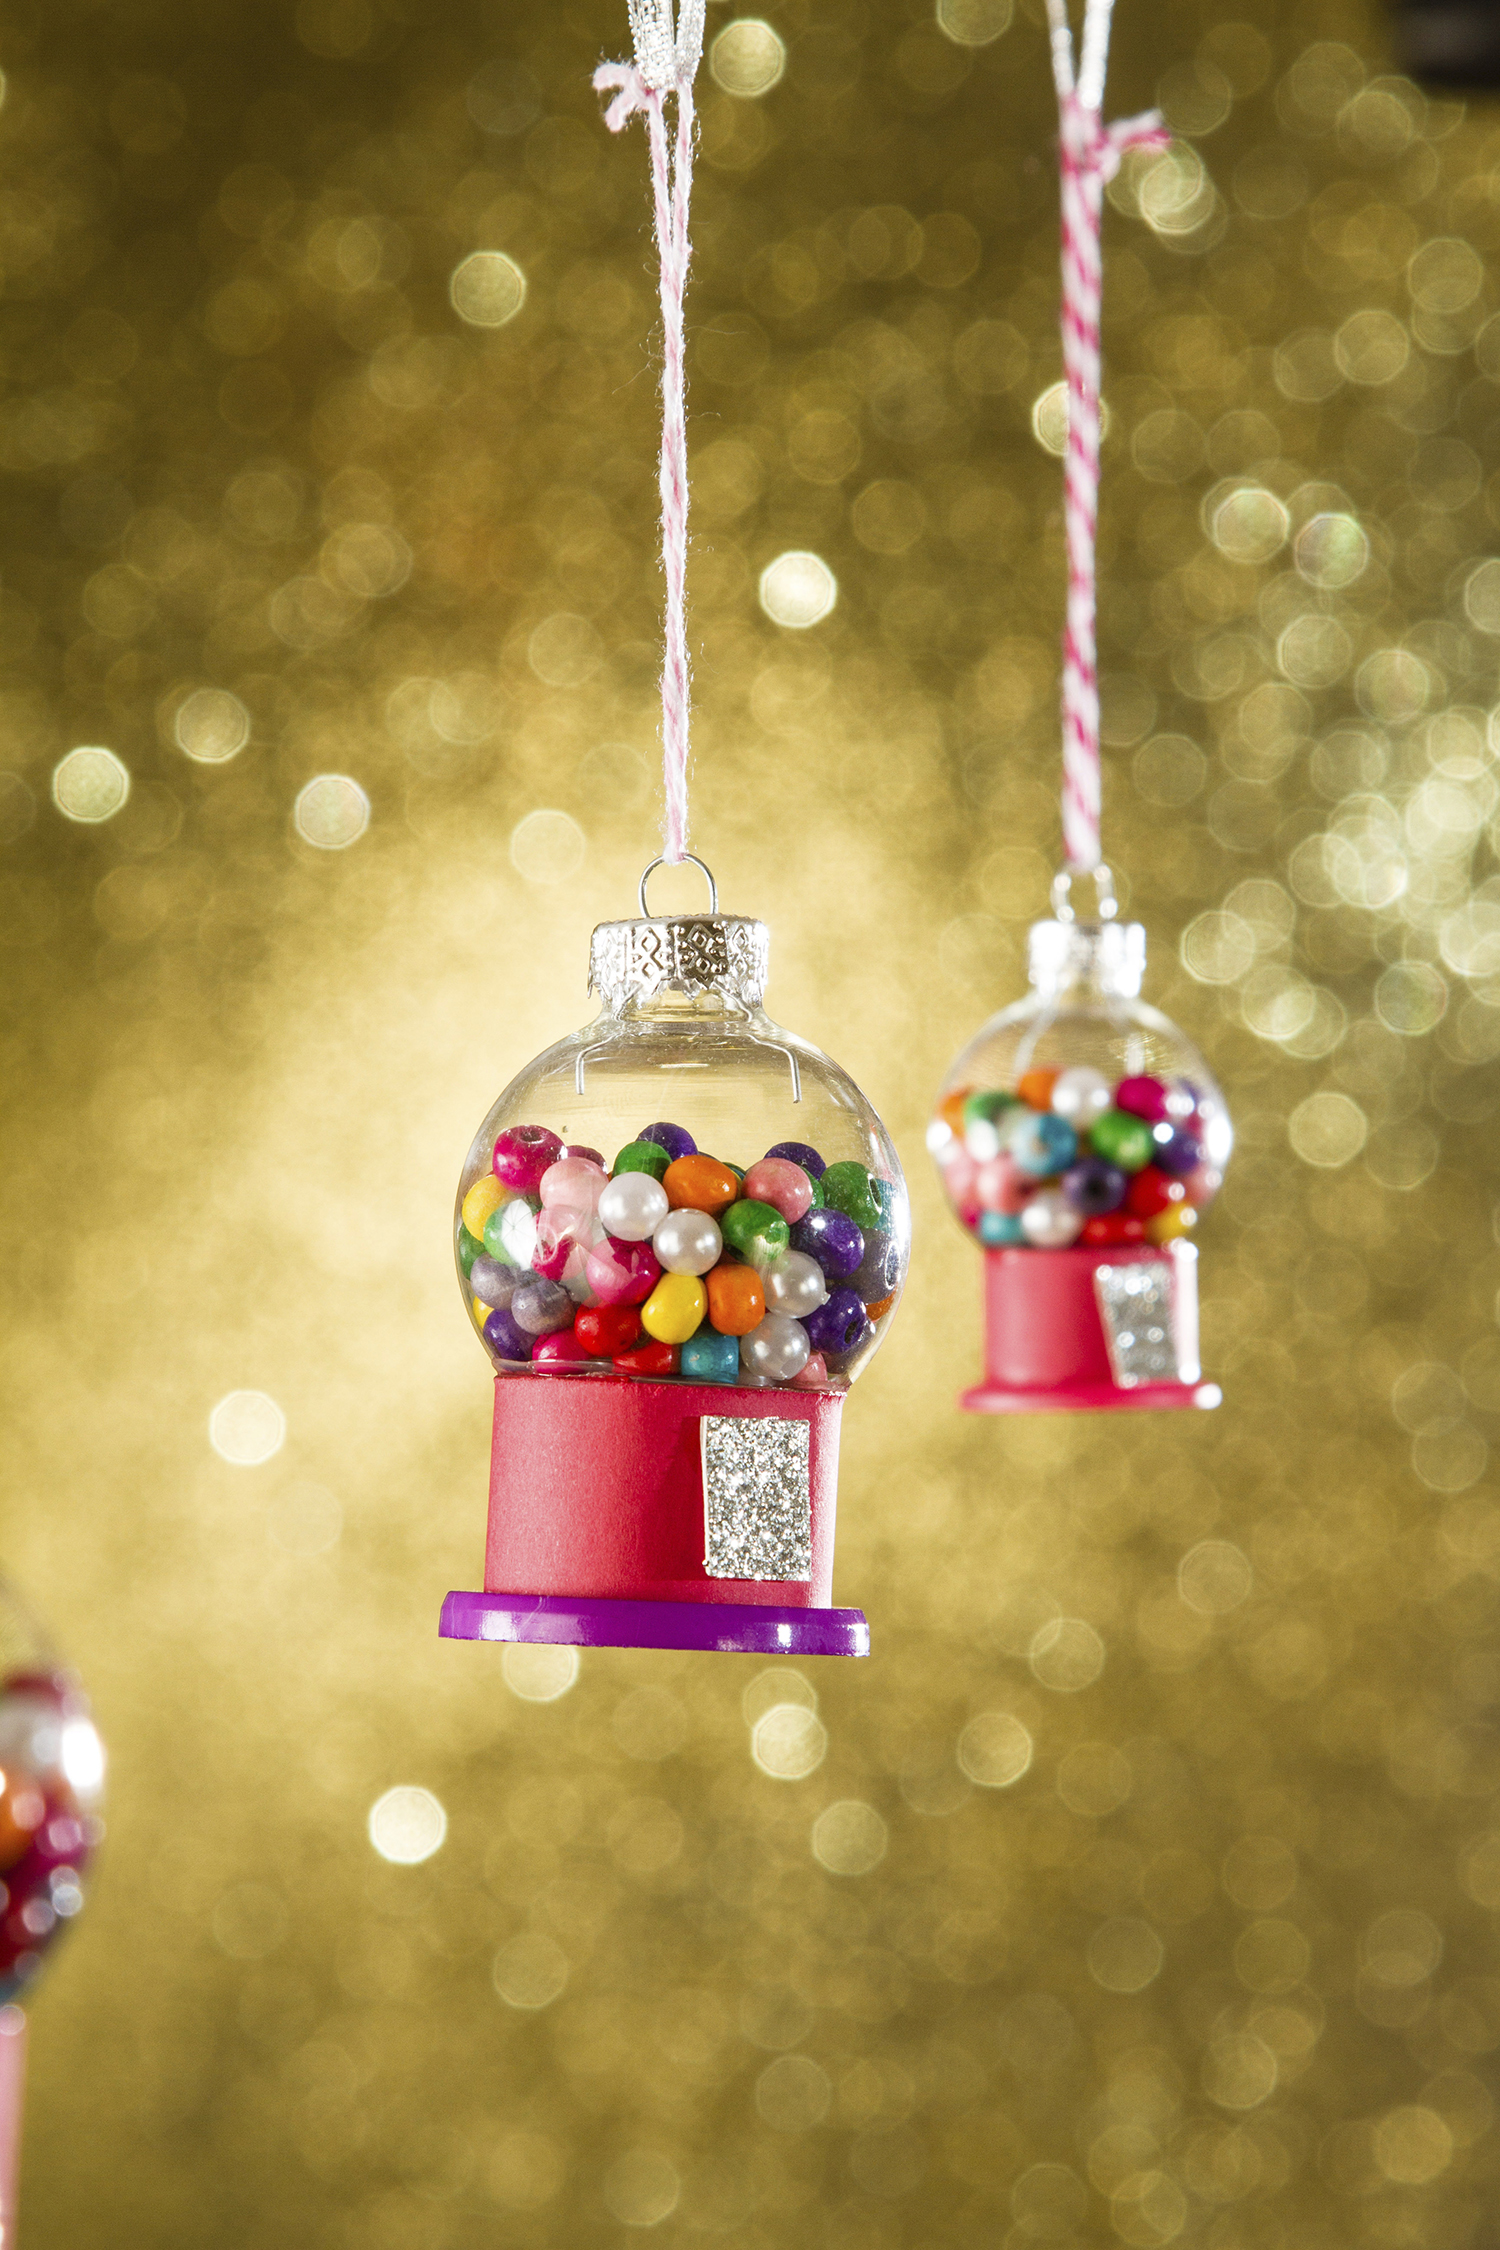 Easy christmas ornaments for kids to make - Diy Christmas Ornament Craft Ideas For Kids From Family Fun Not Quite Susie Homemaker